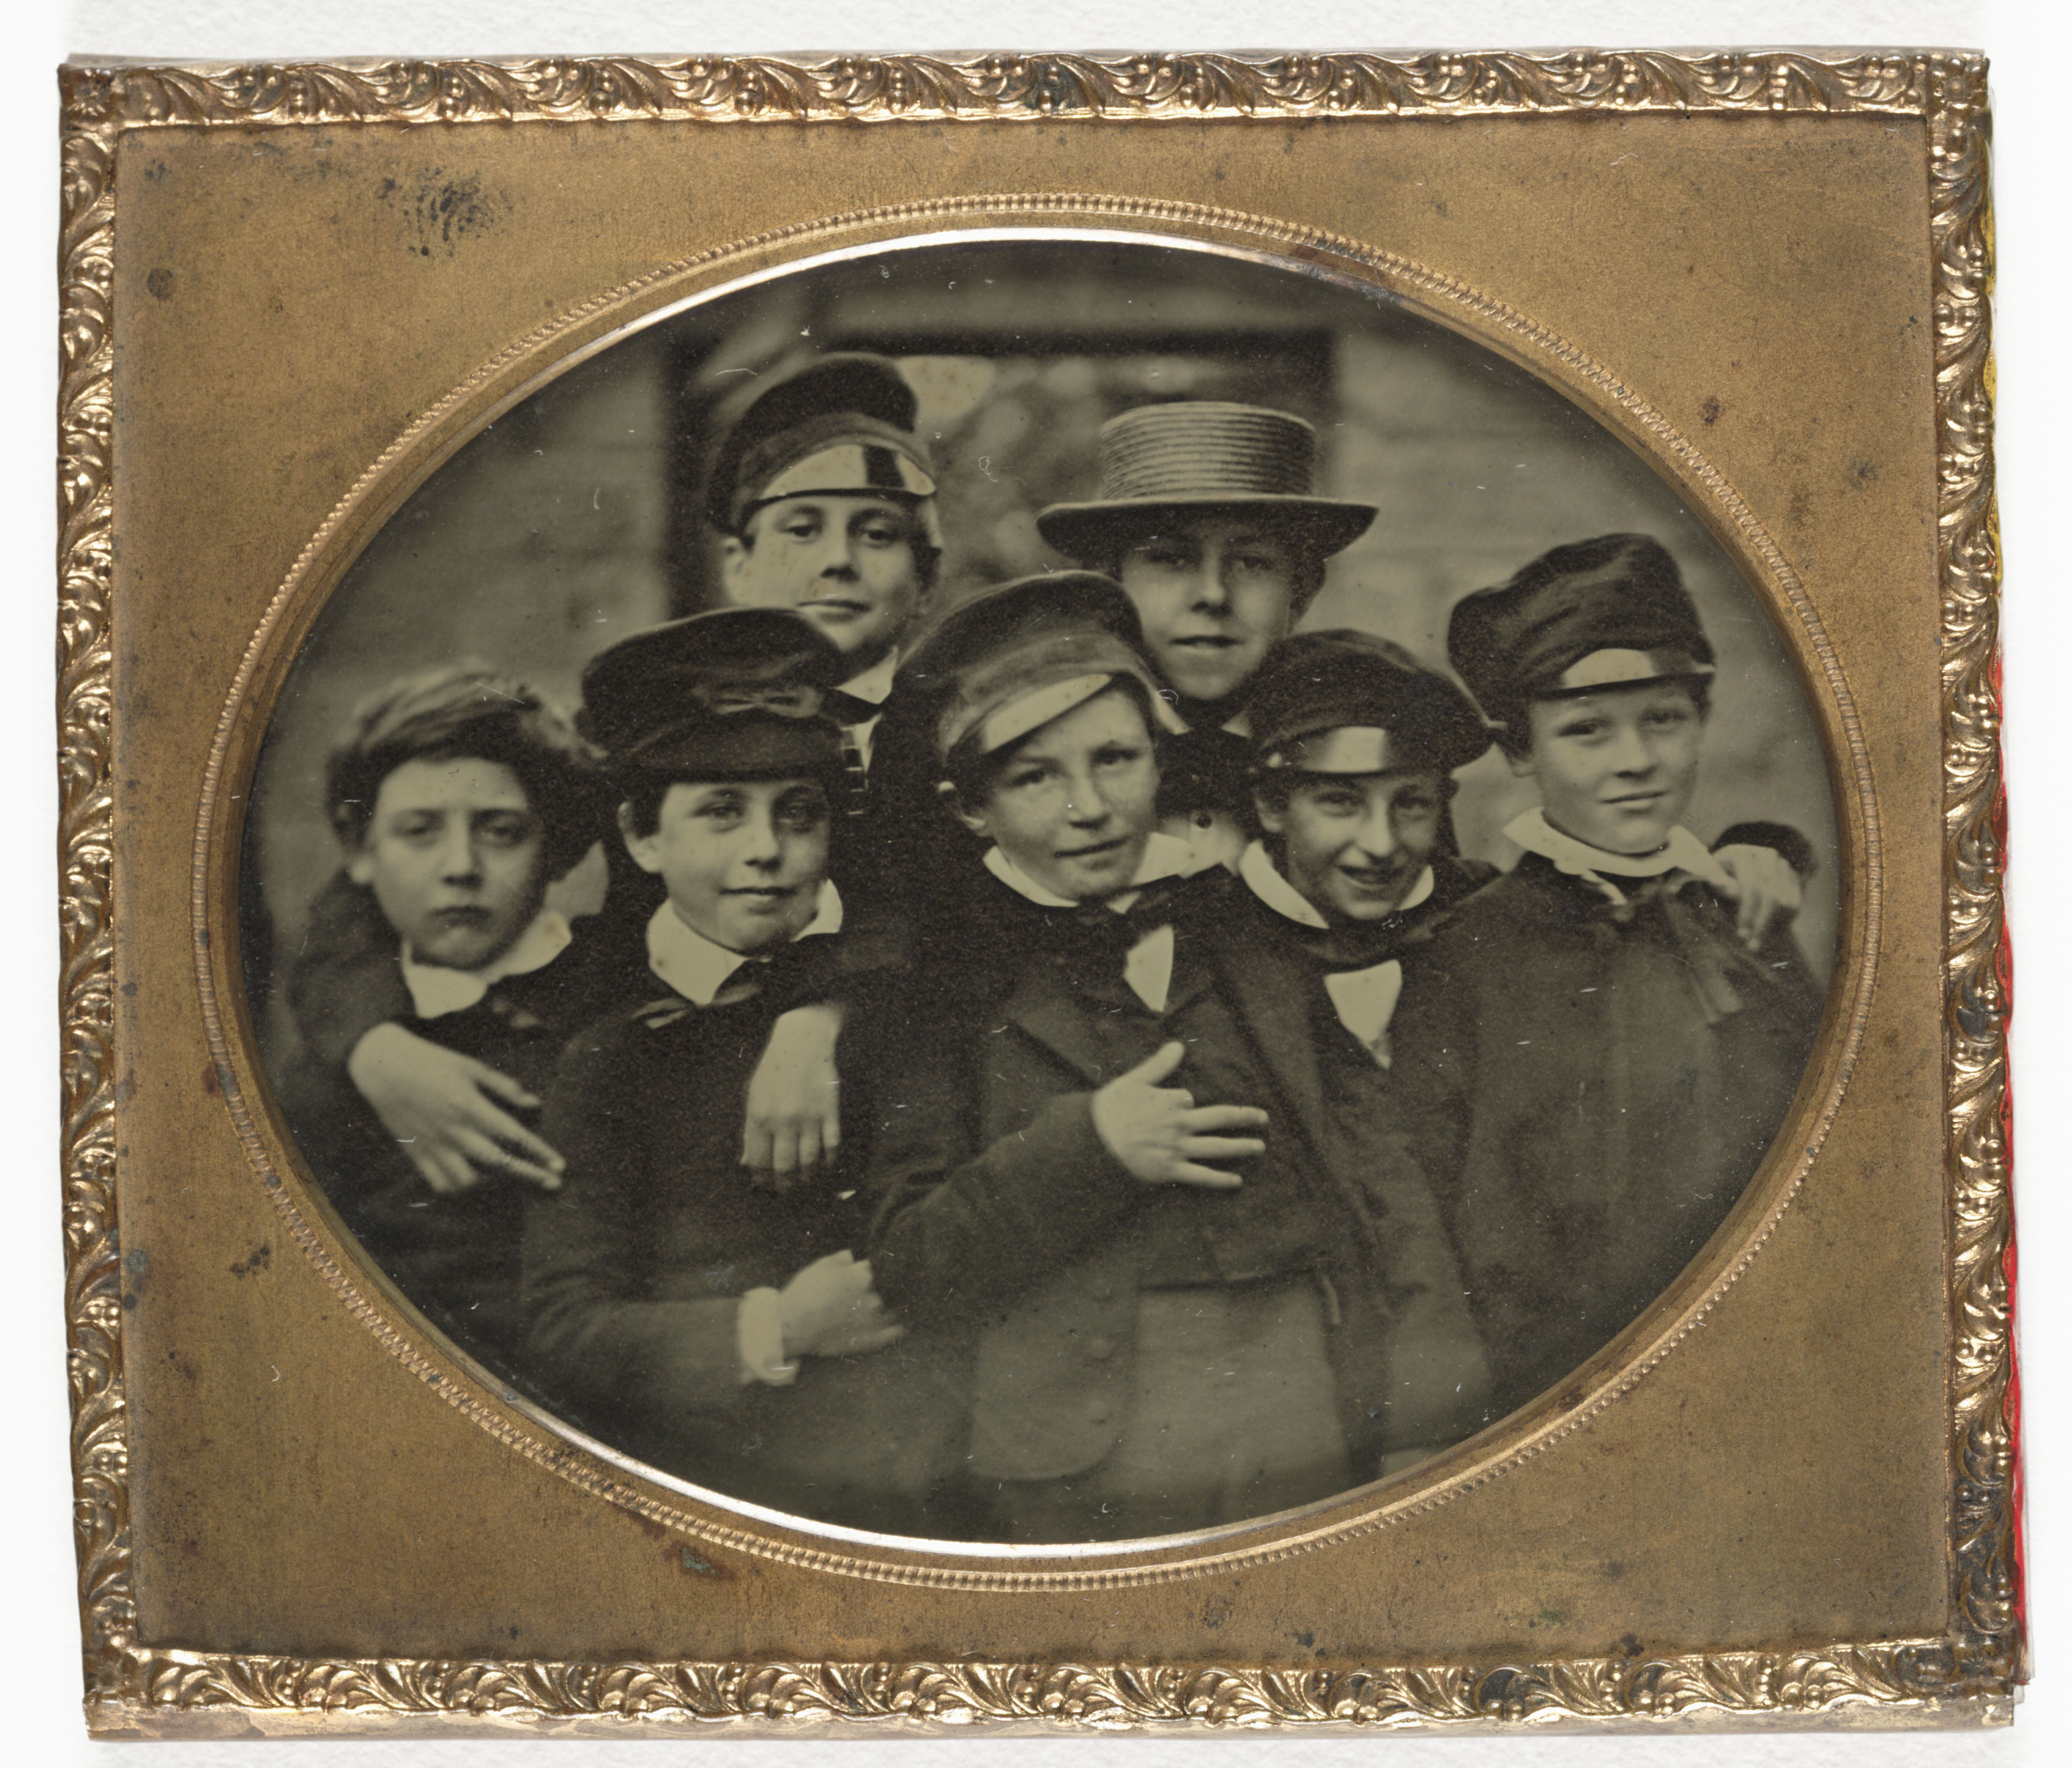 Group of young boys, c 1860.